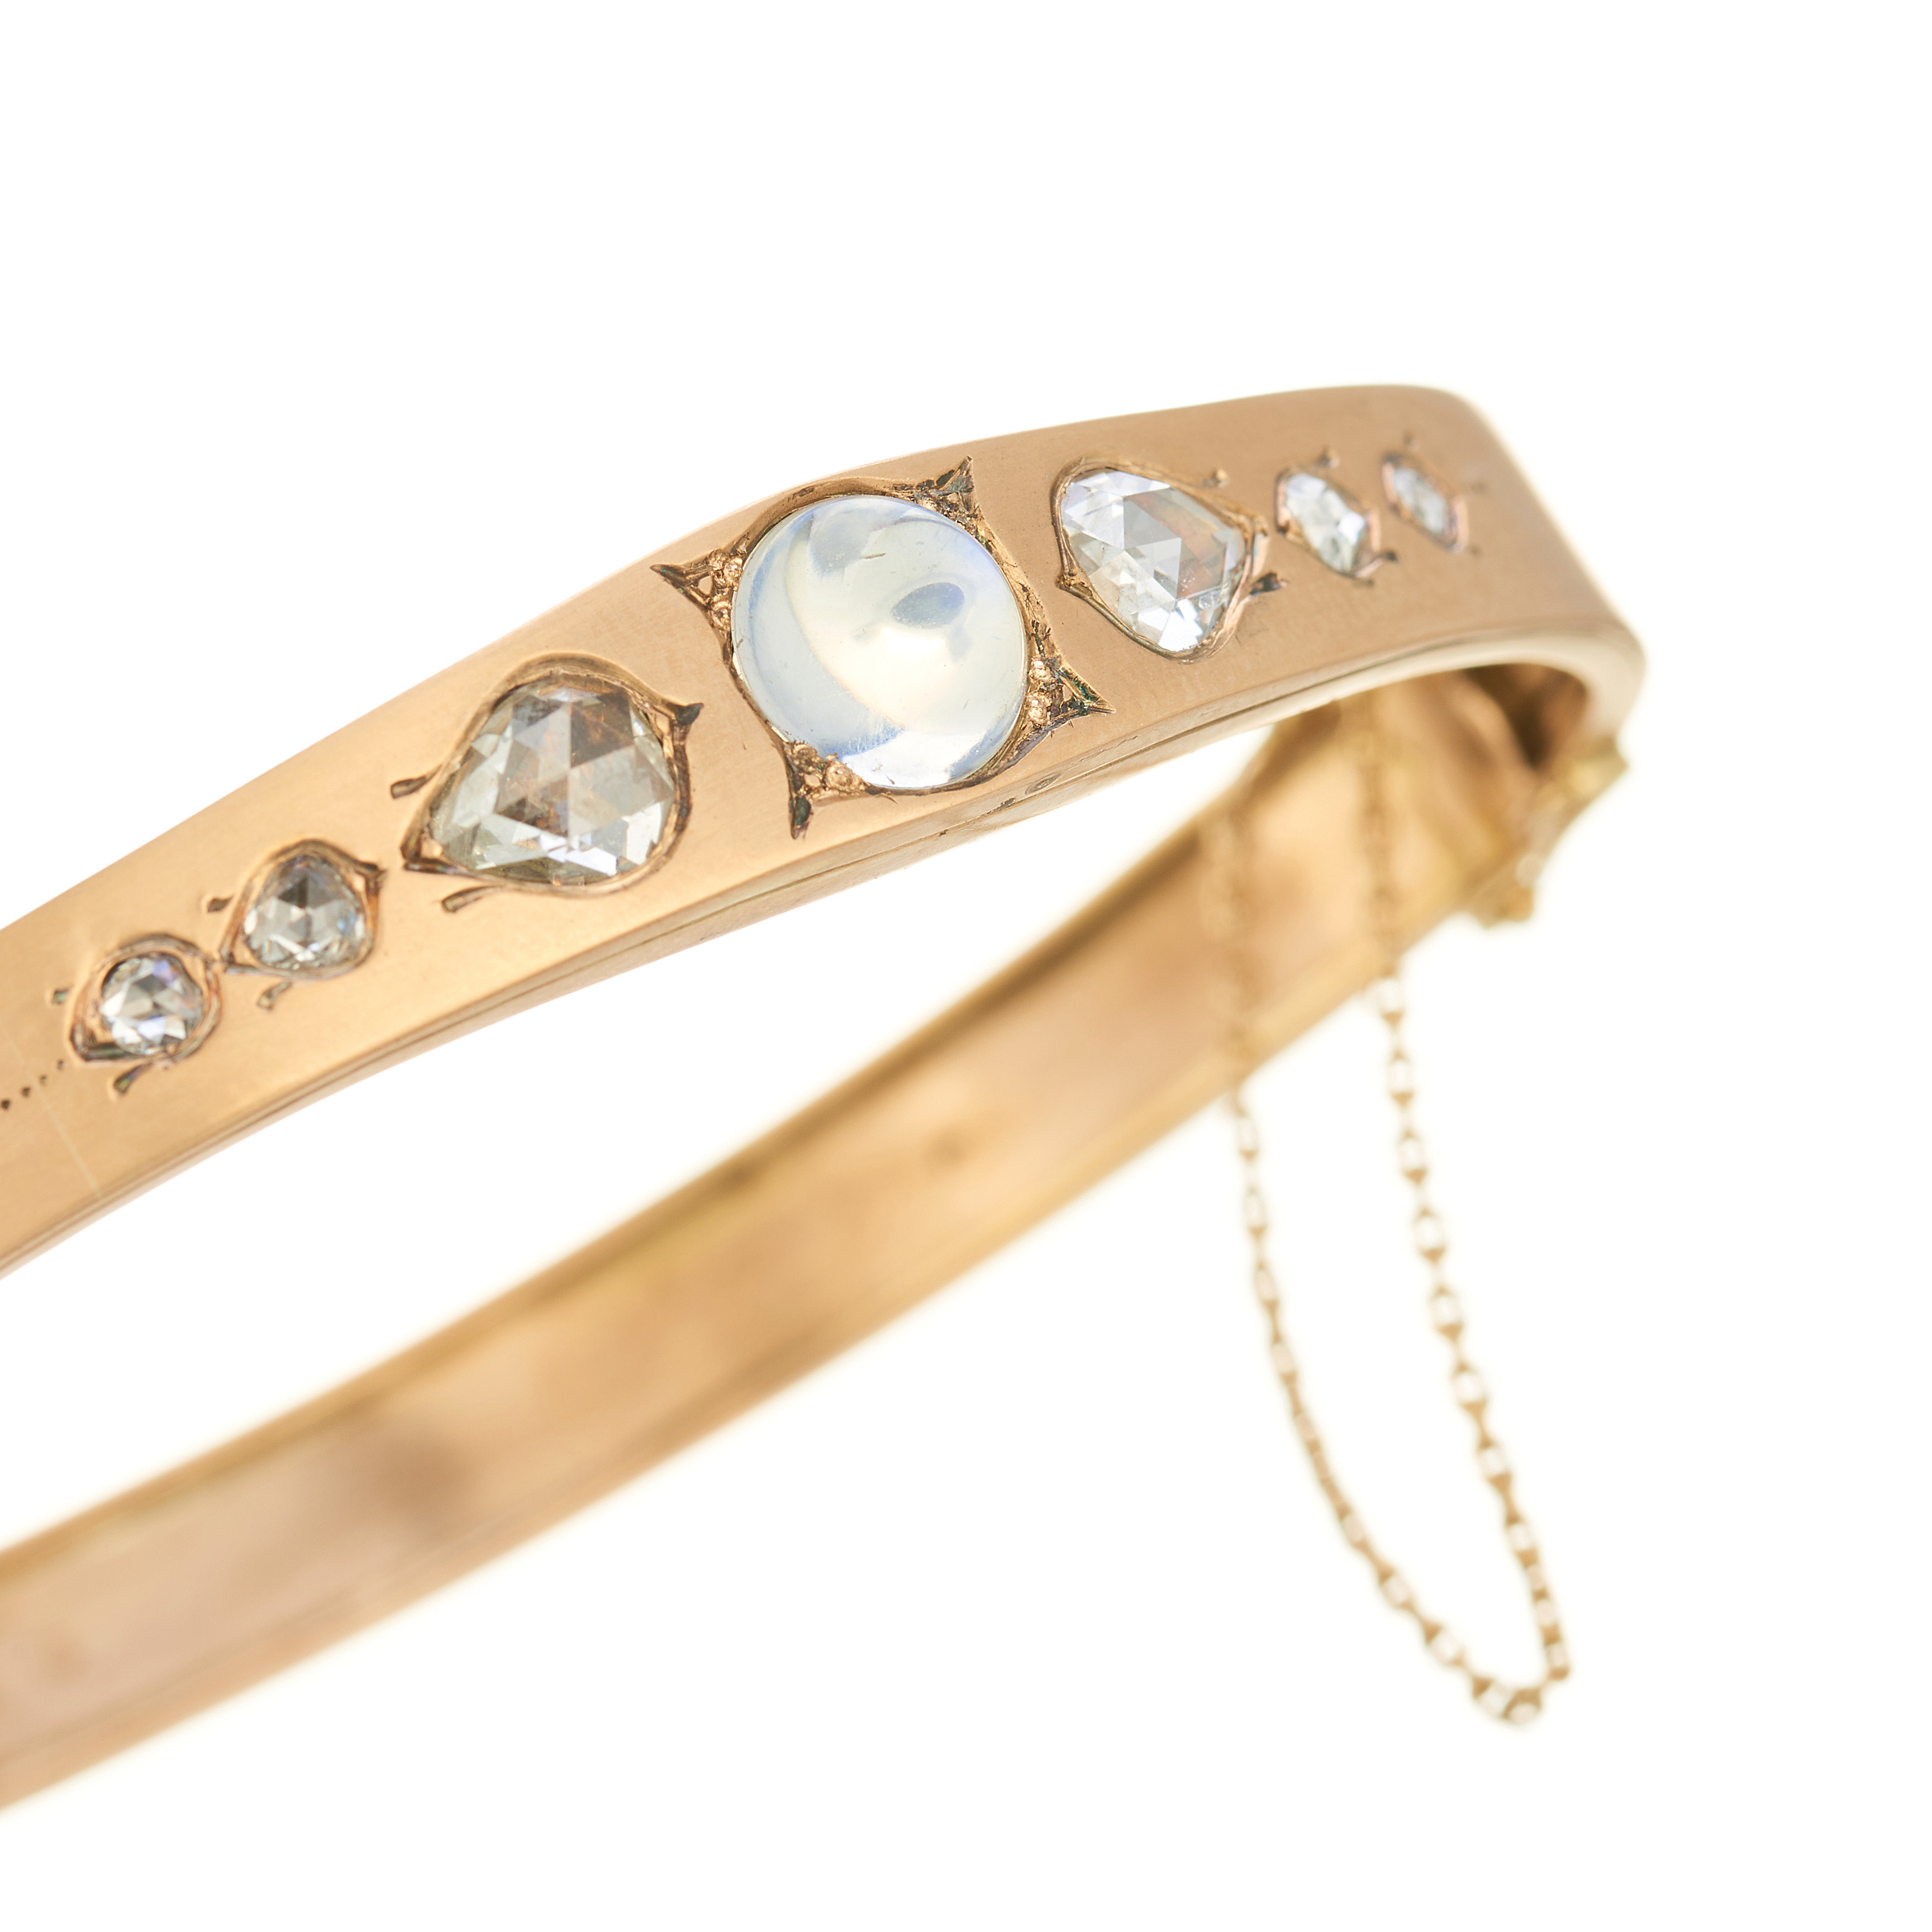 A late 19th century 14ct gold moonstone and diamond hinged bangle - Image 2 of 2